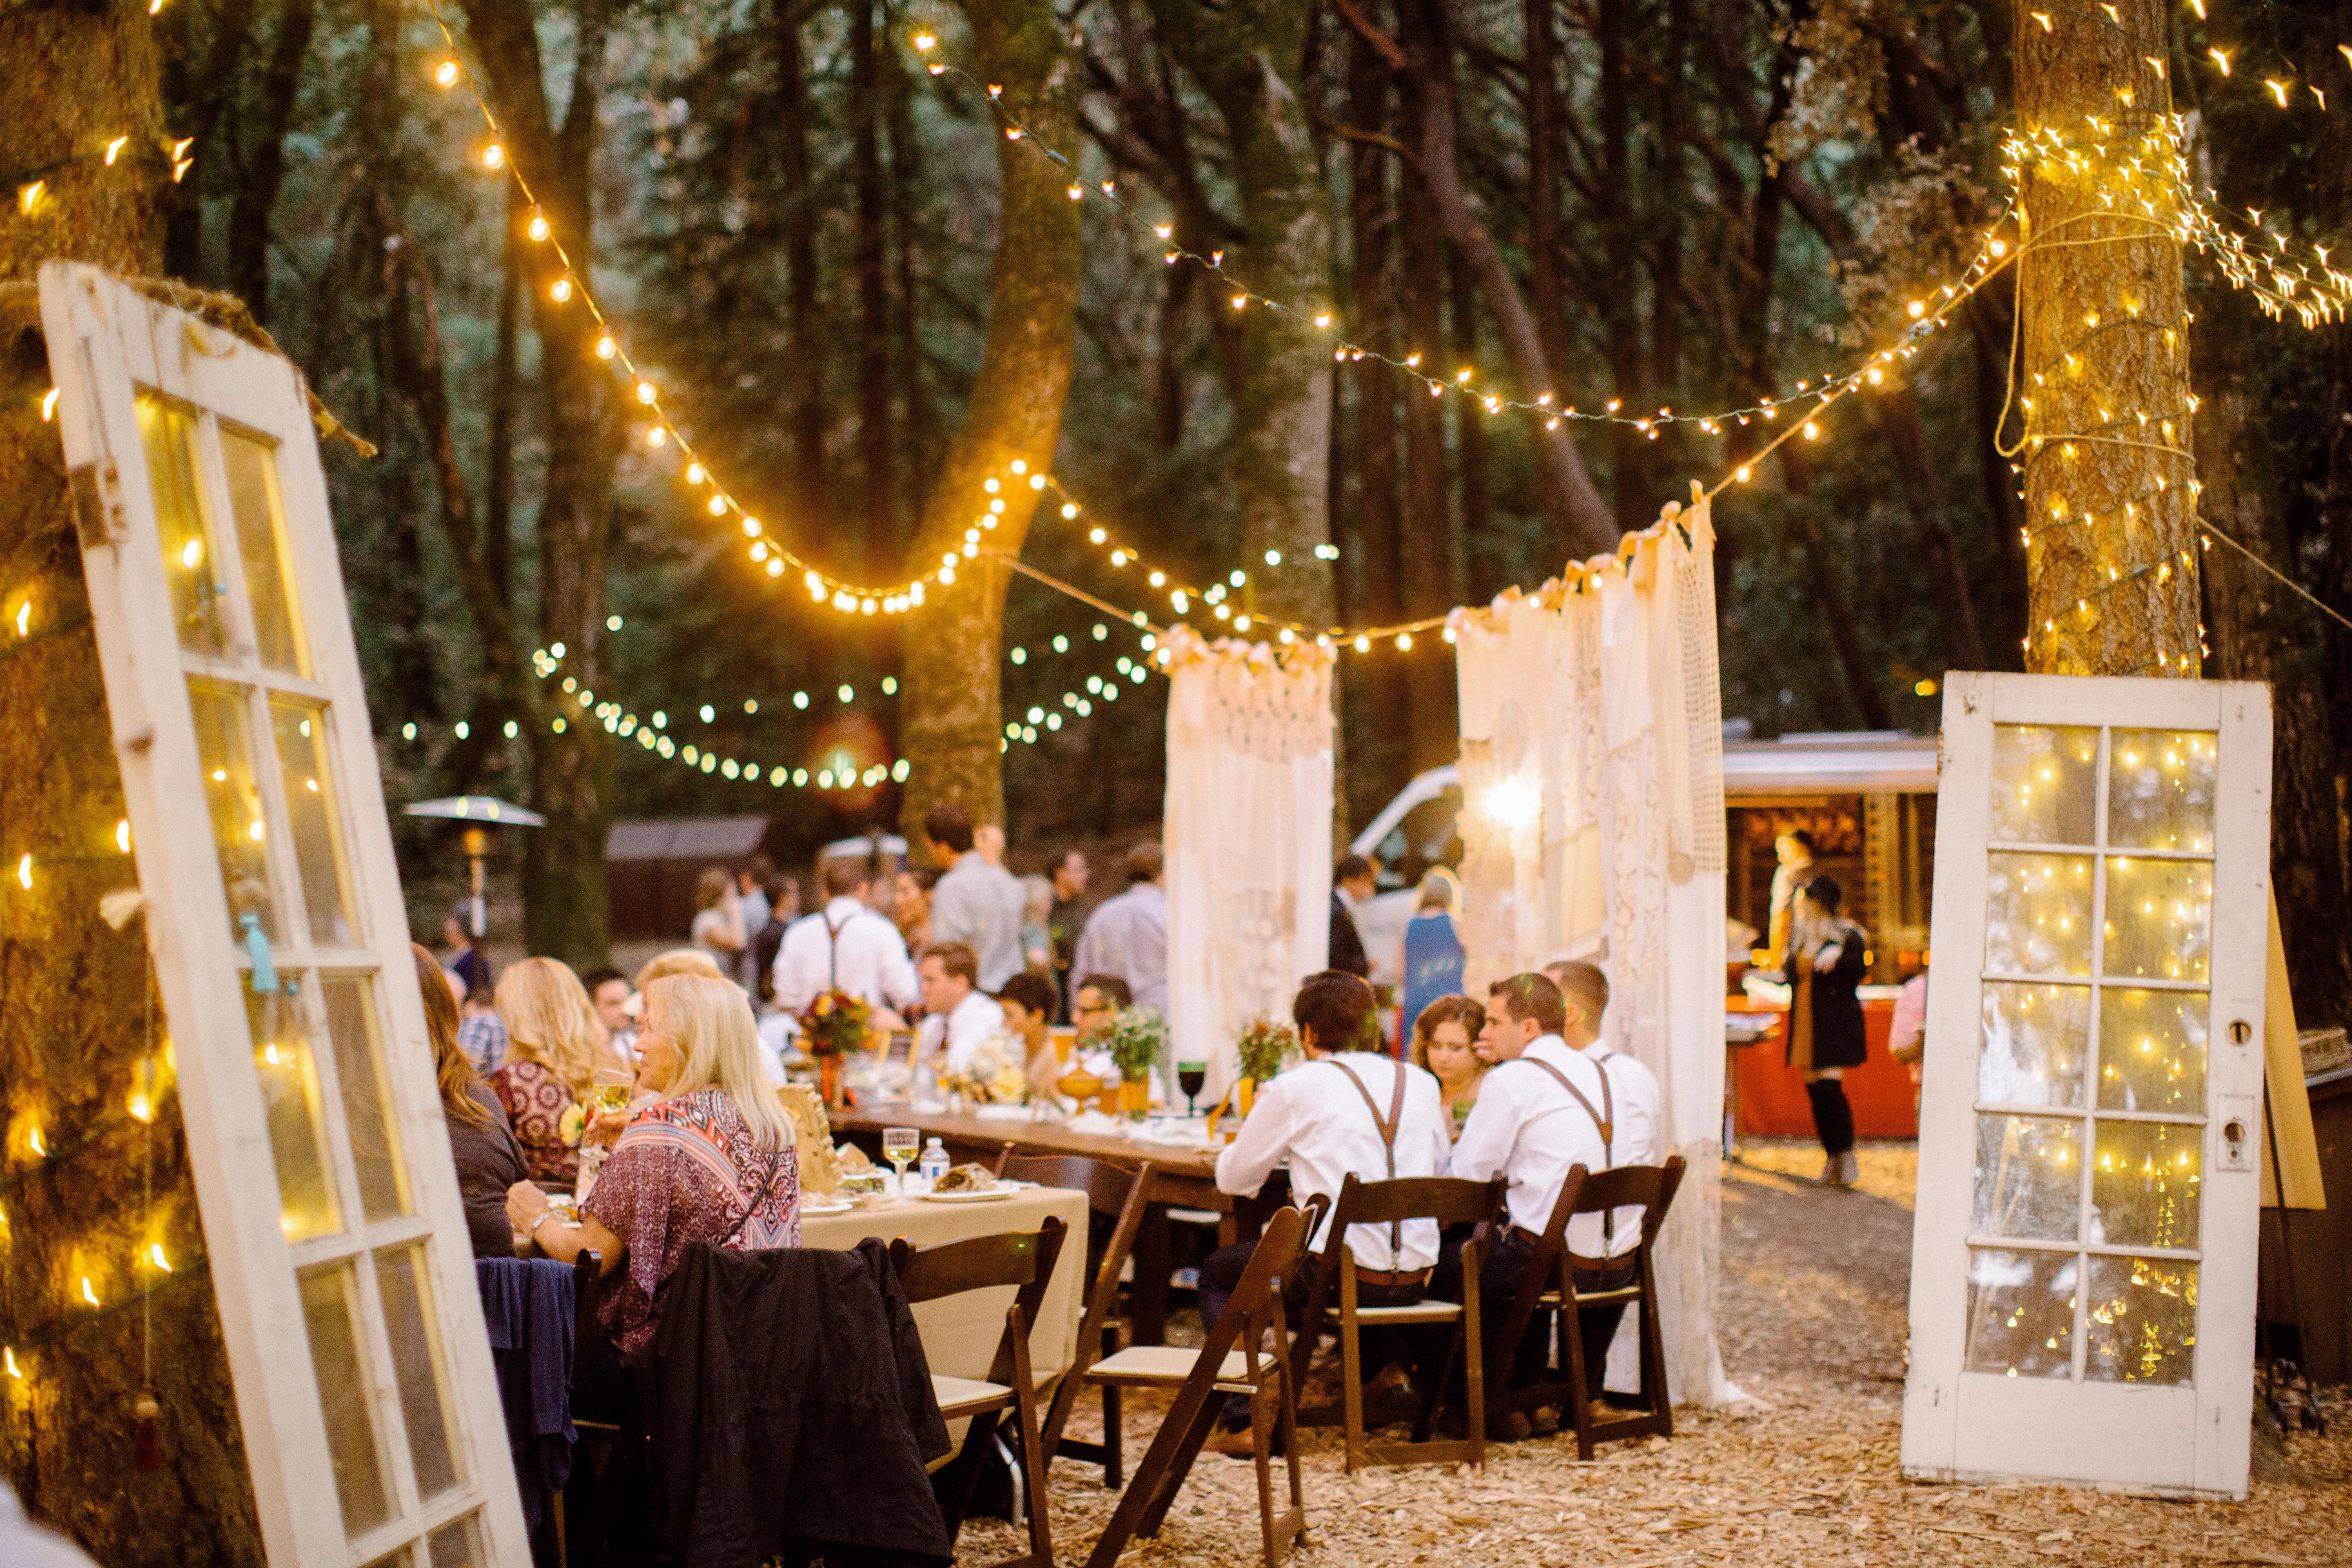 Outdoor Reception Setup With Market Lights